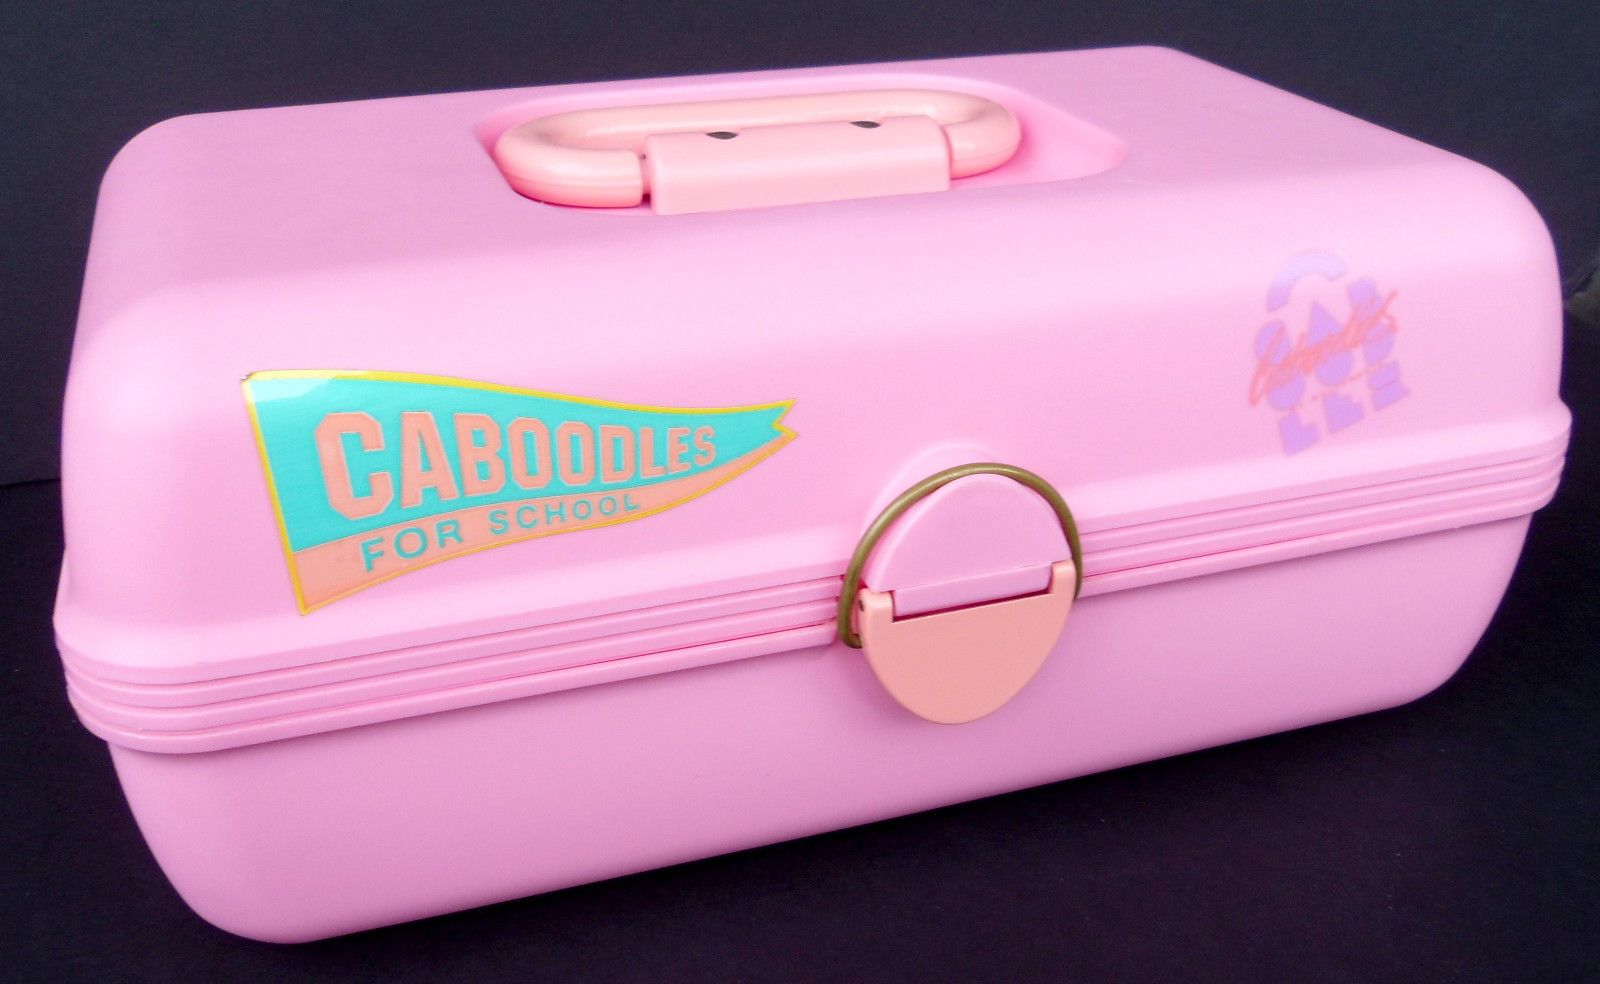 Vtg 80u0027s Caboodles for School Small Pink Makeup Craft Storage Case 12  2602 | eBay & Vtg 80u0027s Caboodles for School Small Pink Makeup Craft Storage Case ...